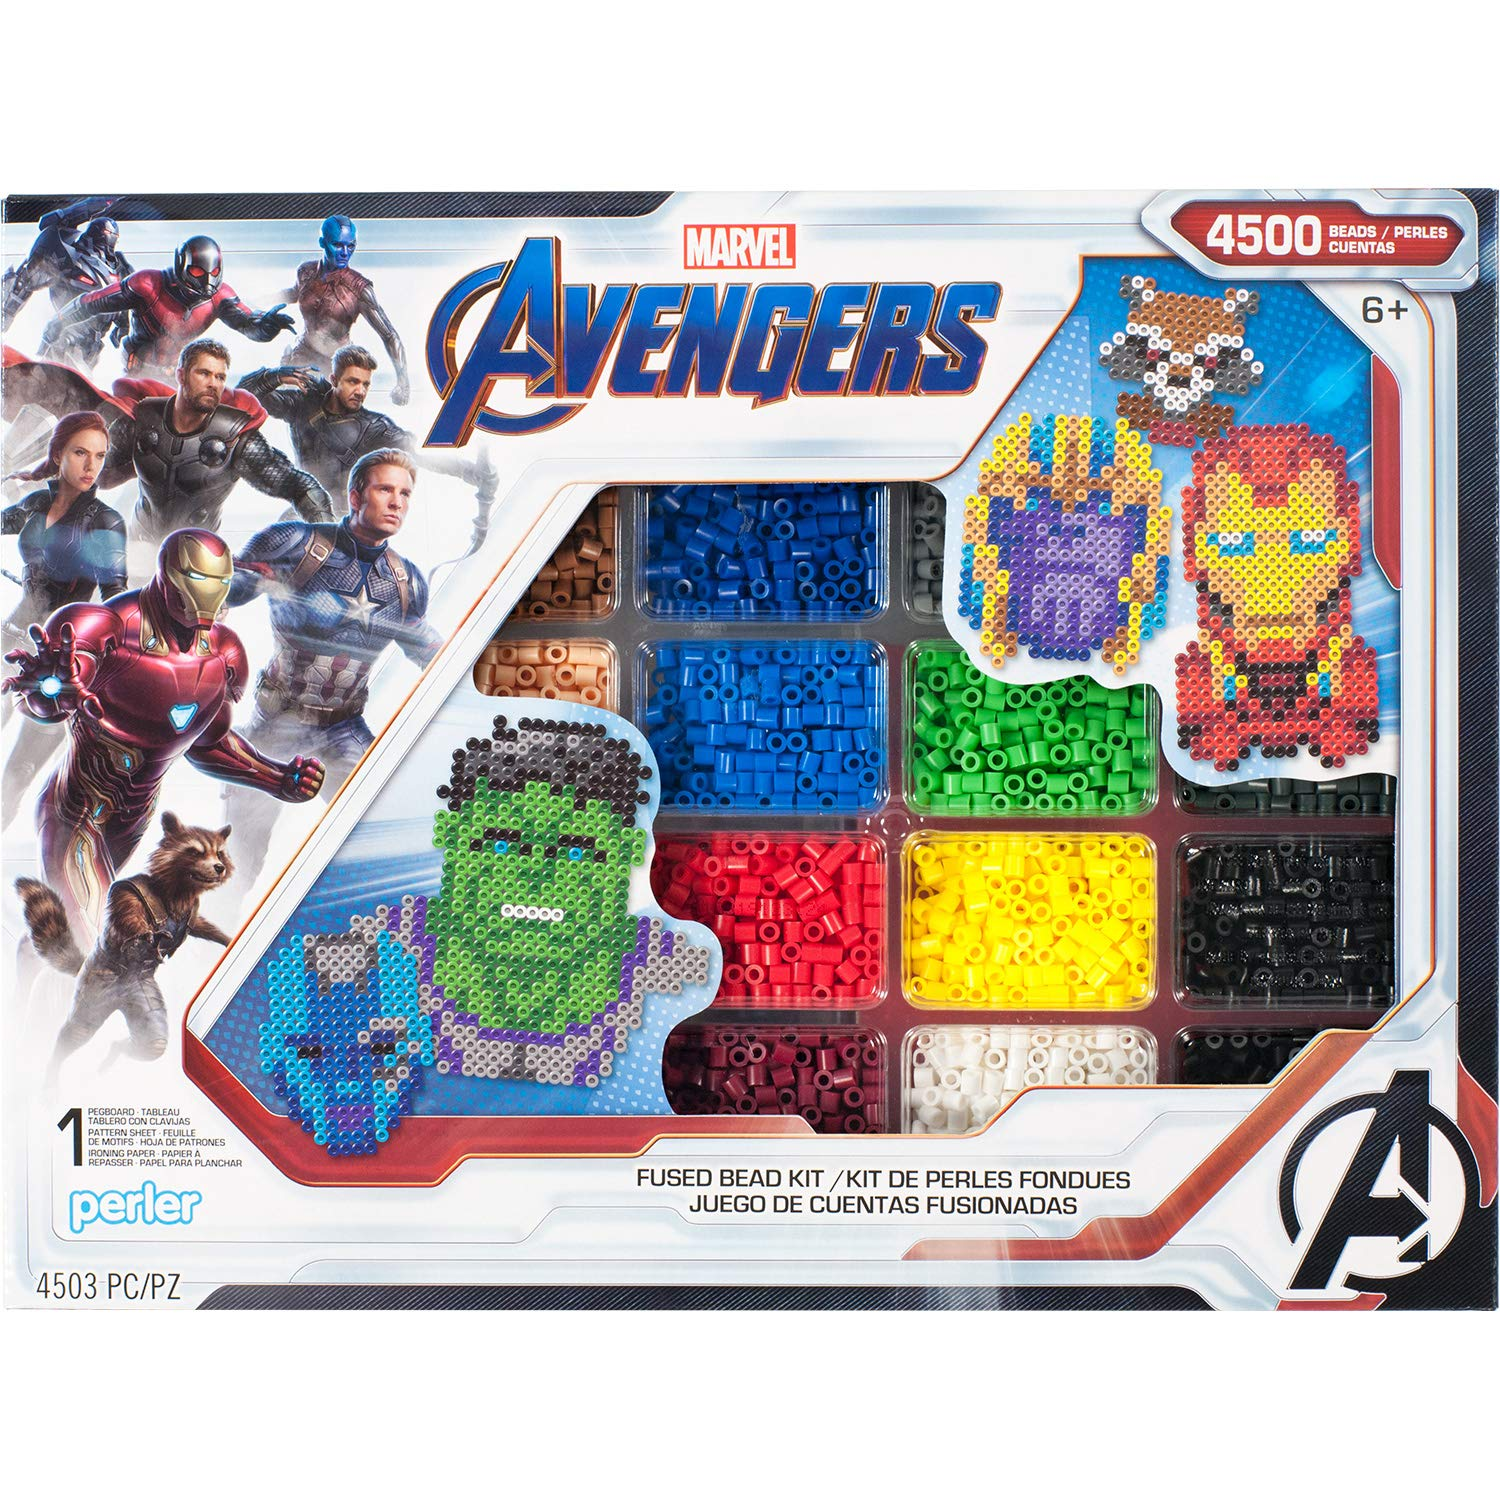 Perler PER8054346 Marvel Avengers Fuse Bead Kit, 4503pc, 10 Patterns, Multicolor by Perler